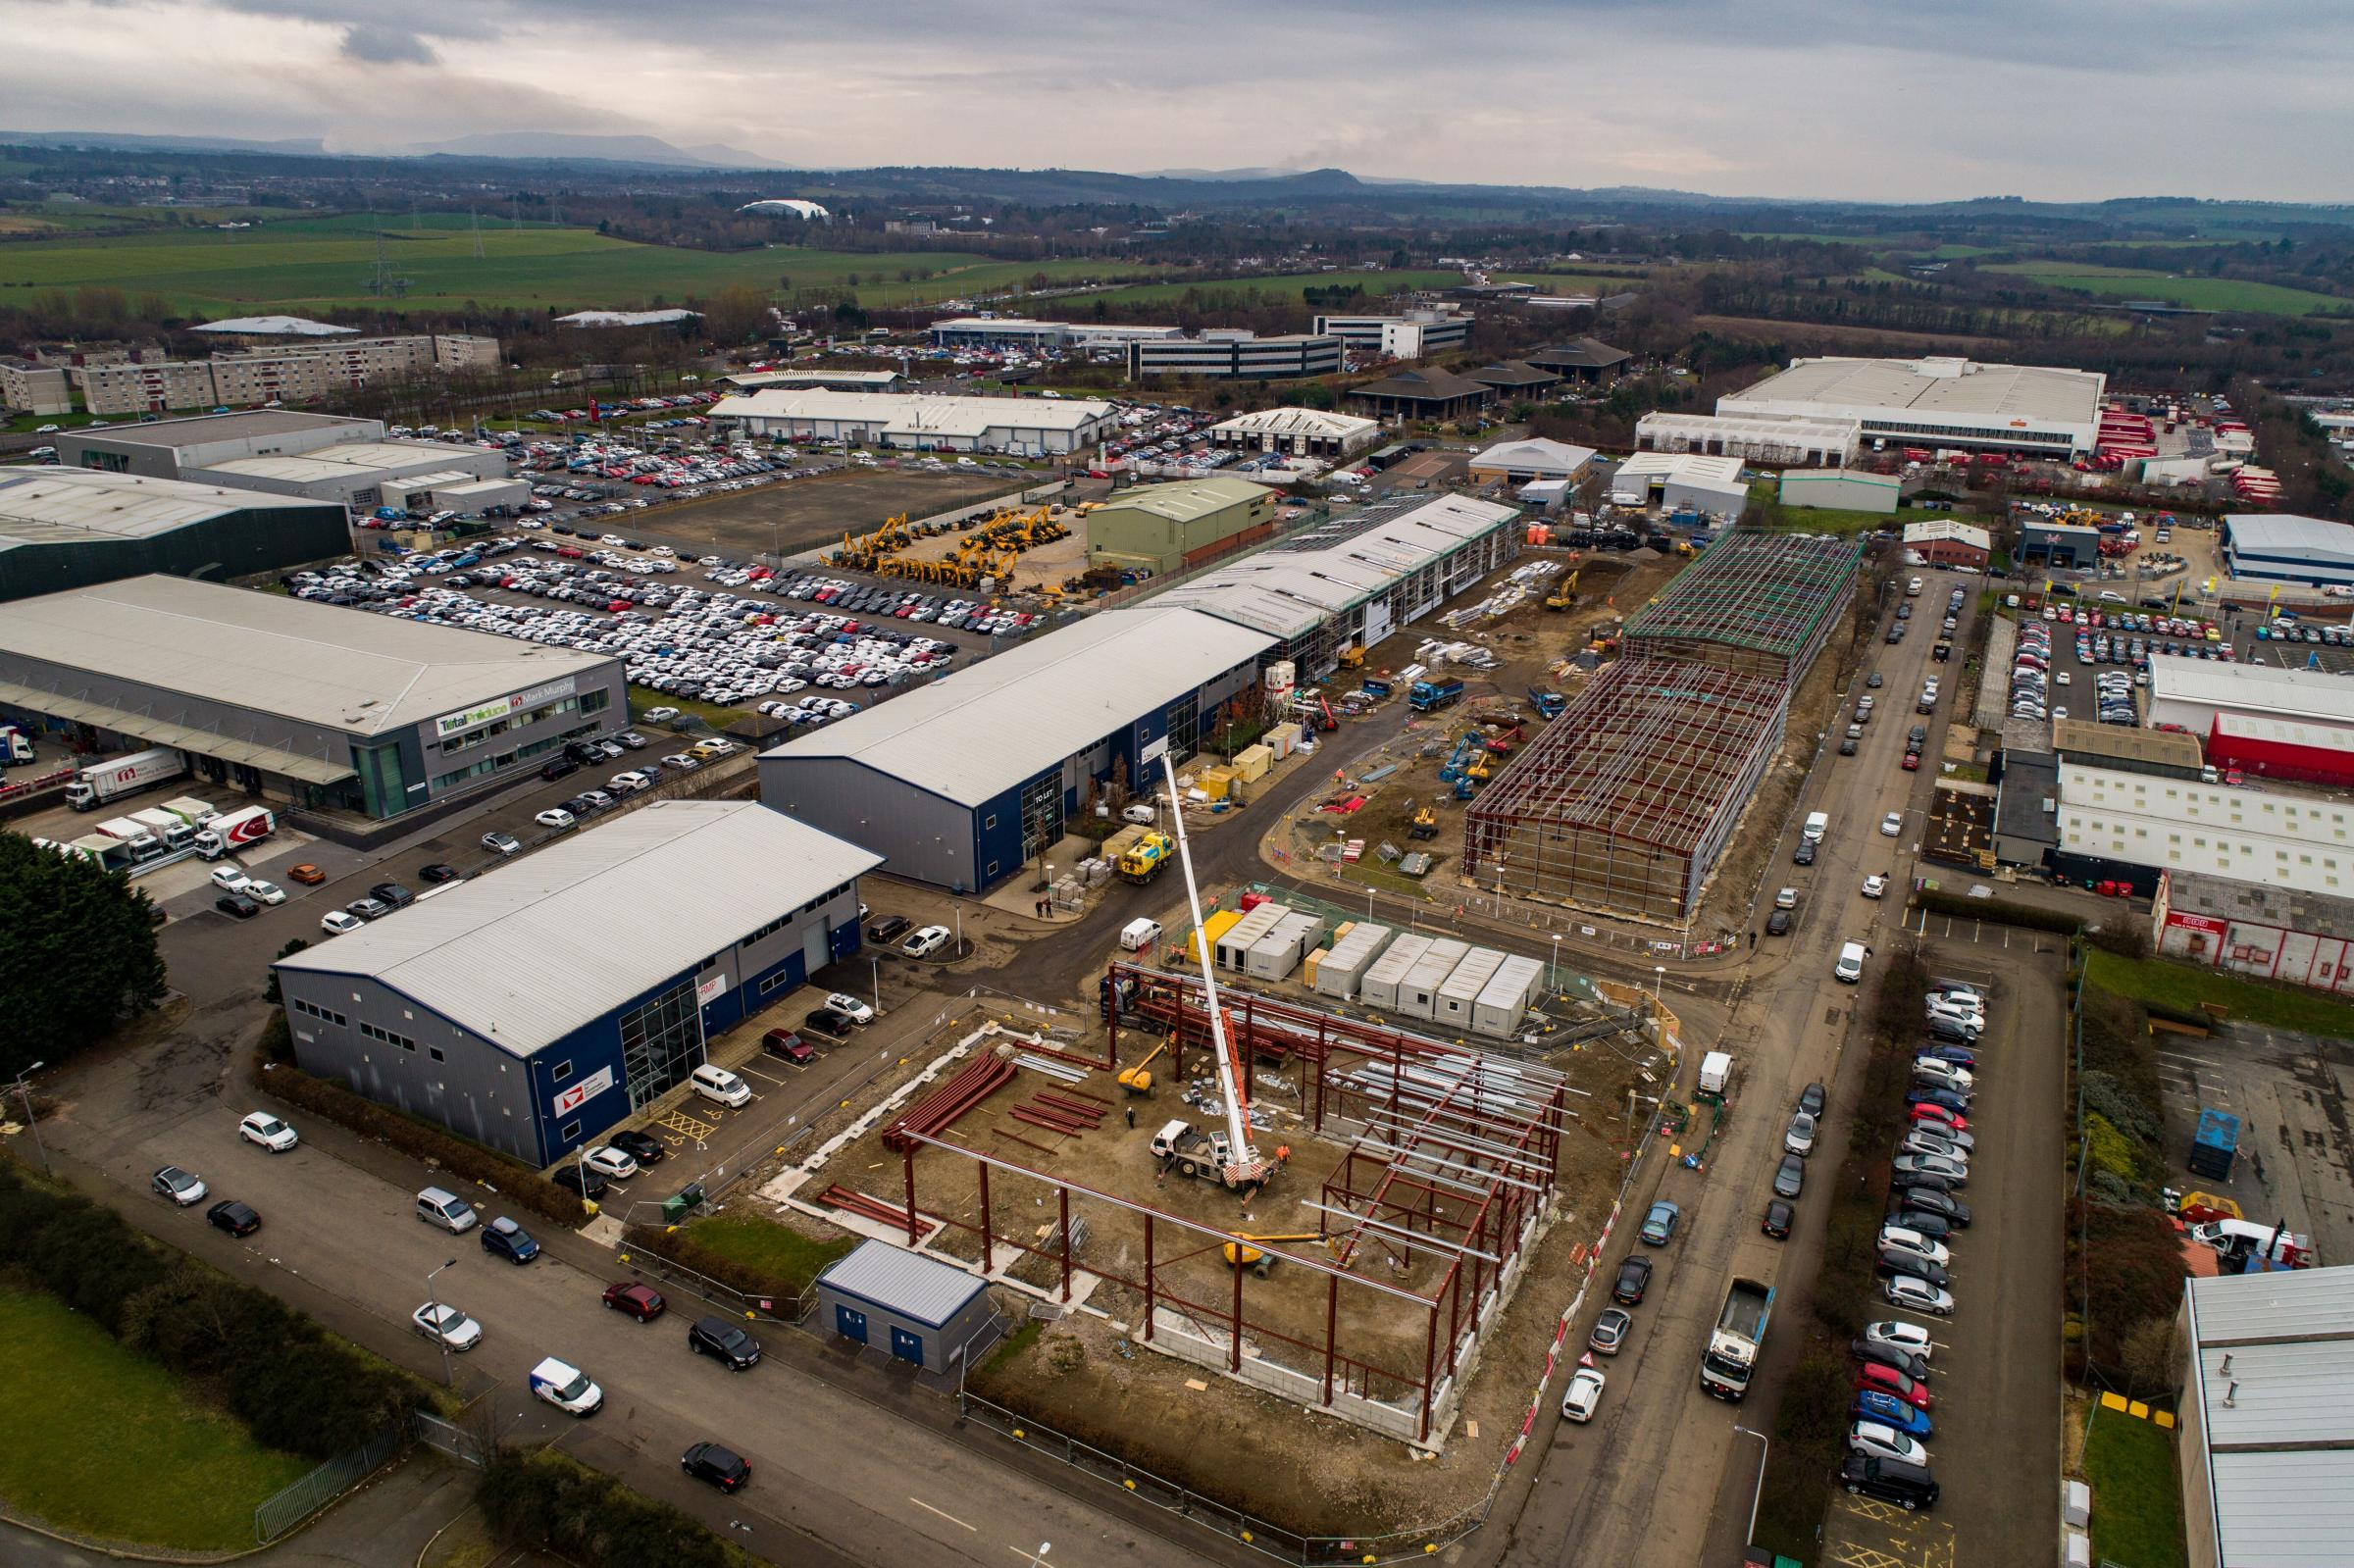 Scottish business park bought in deal worth around £15 million